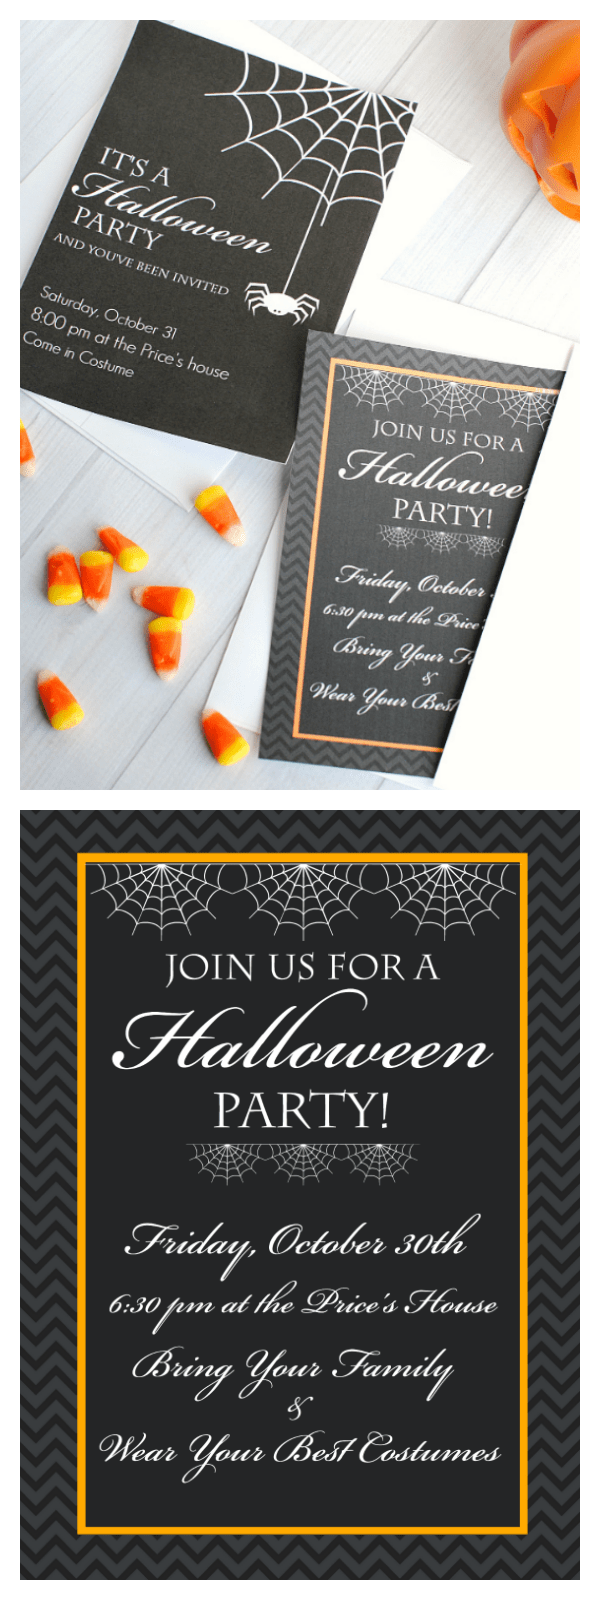 photo relating to Halloween Invitations Printable called Lovable Free of charge Printable Halloween Invites Exciting-Squared